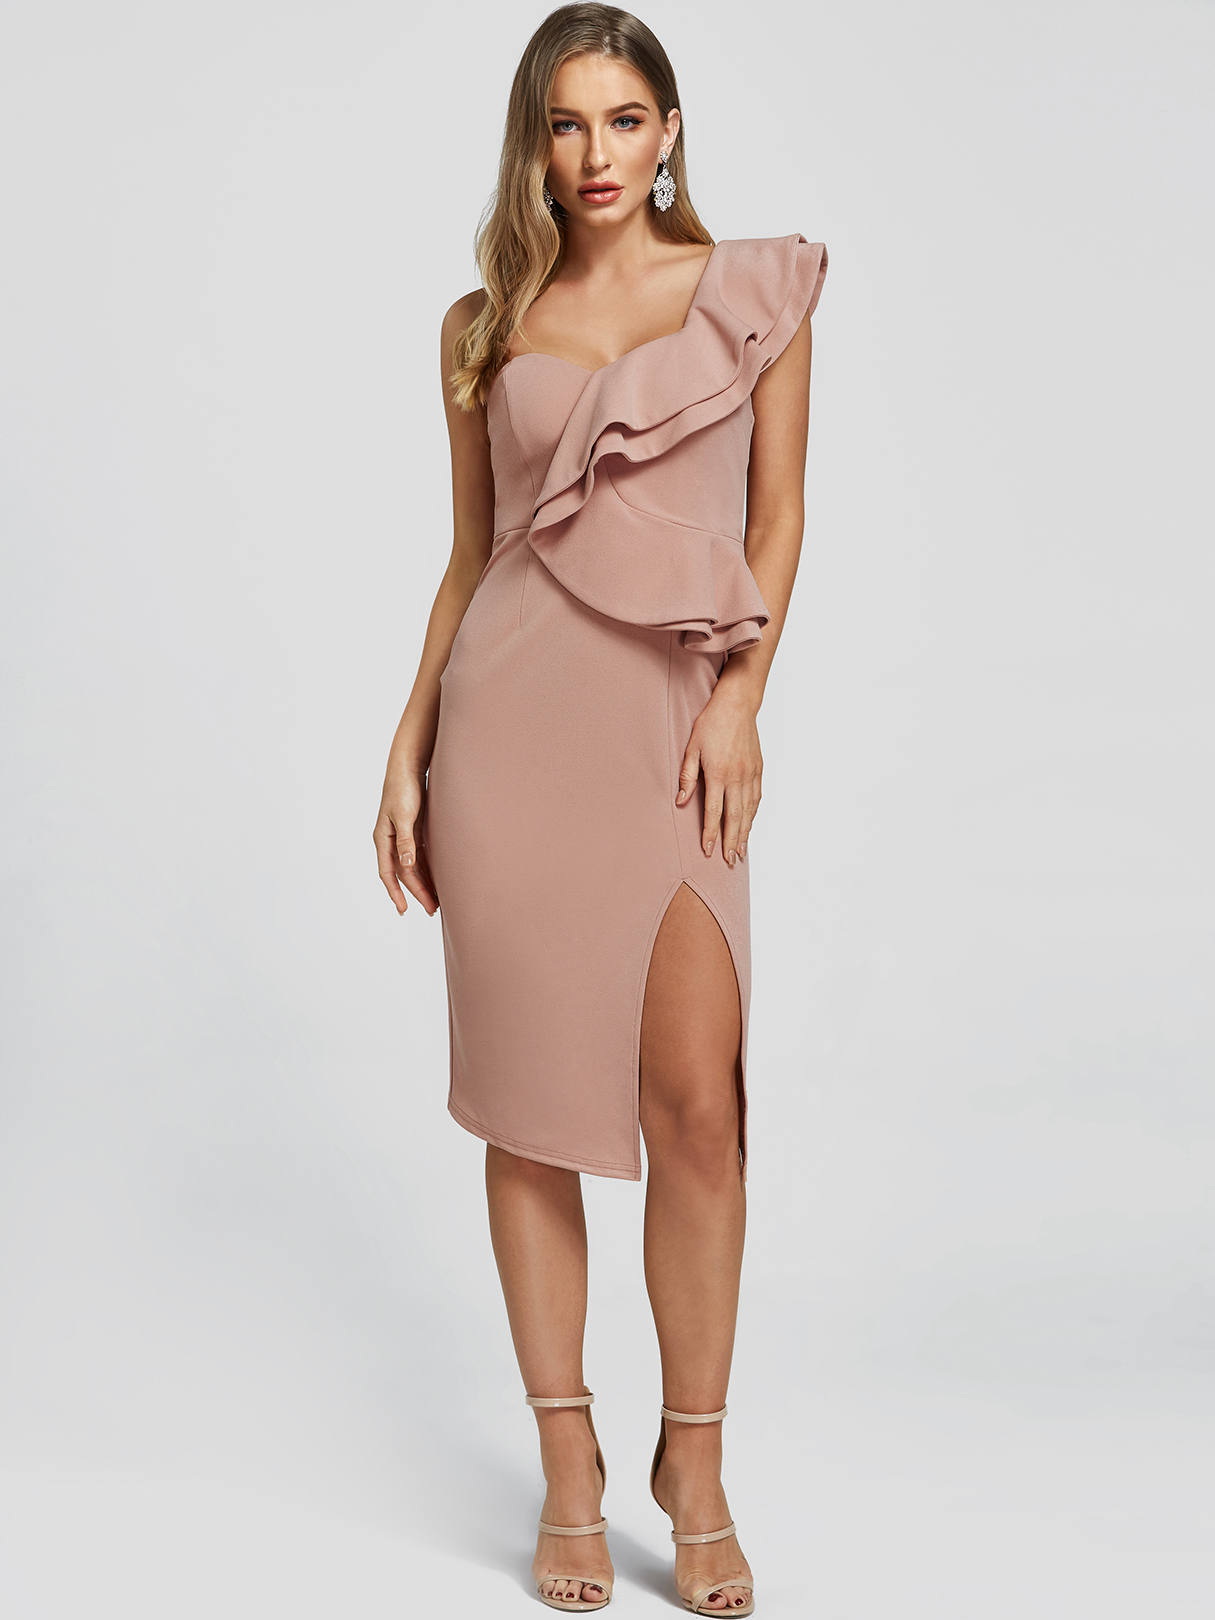 Pink Pleated Design One Shoulder Slit Hem Dress ROBES Rose  s|m|l|xl Yoins